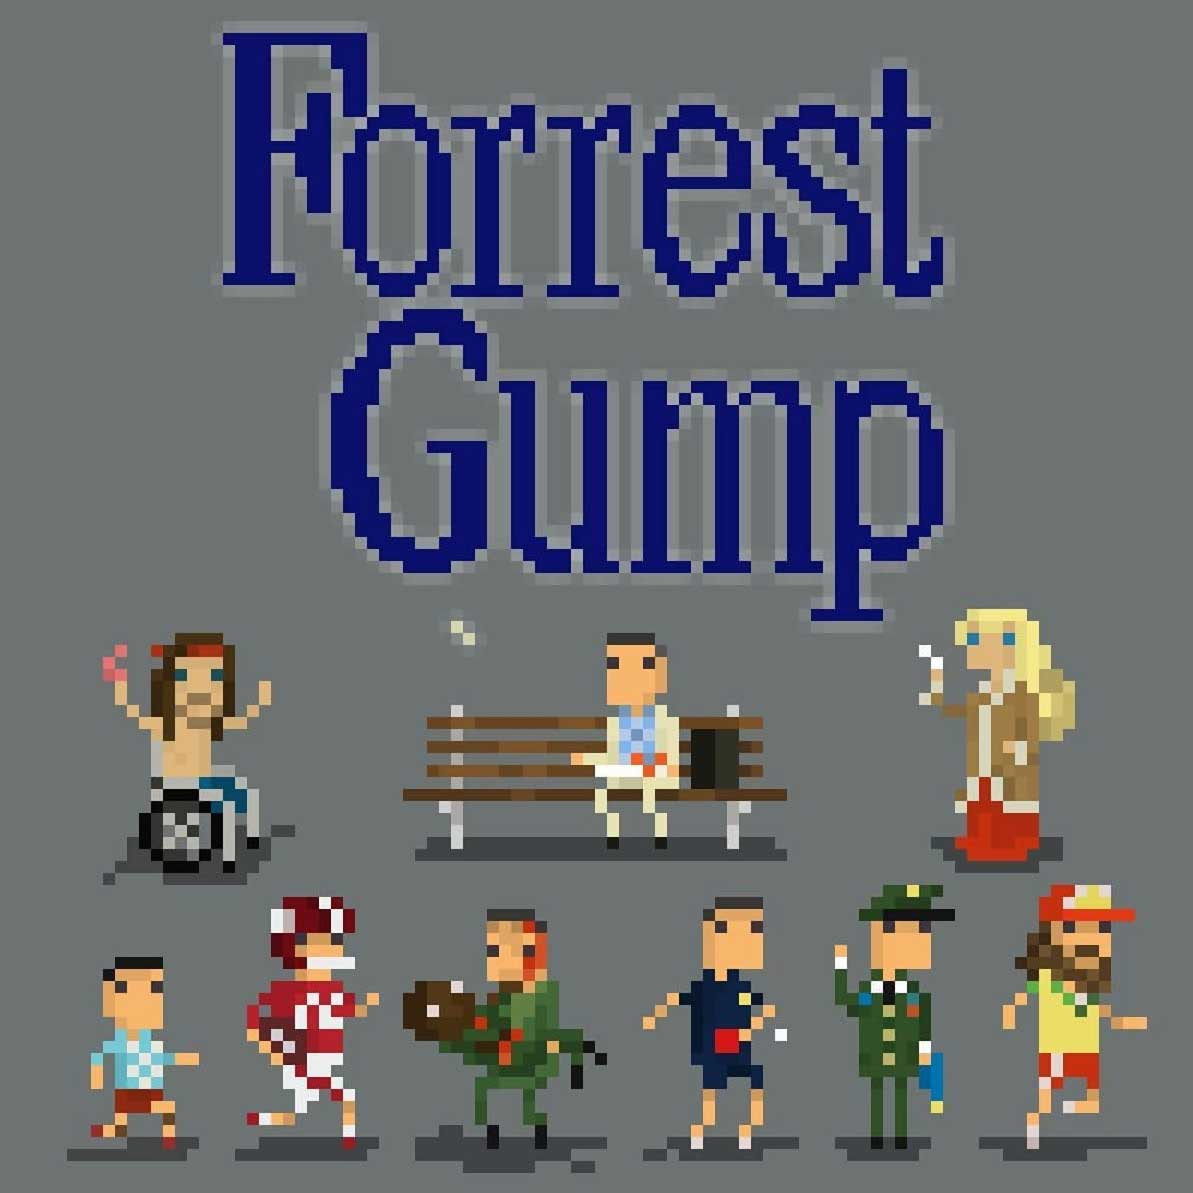 Filme und Serien in verpixeltem 8-Bit-Look chuppixel-pixel-art-movies-tv_12